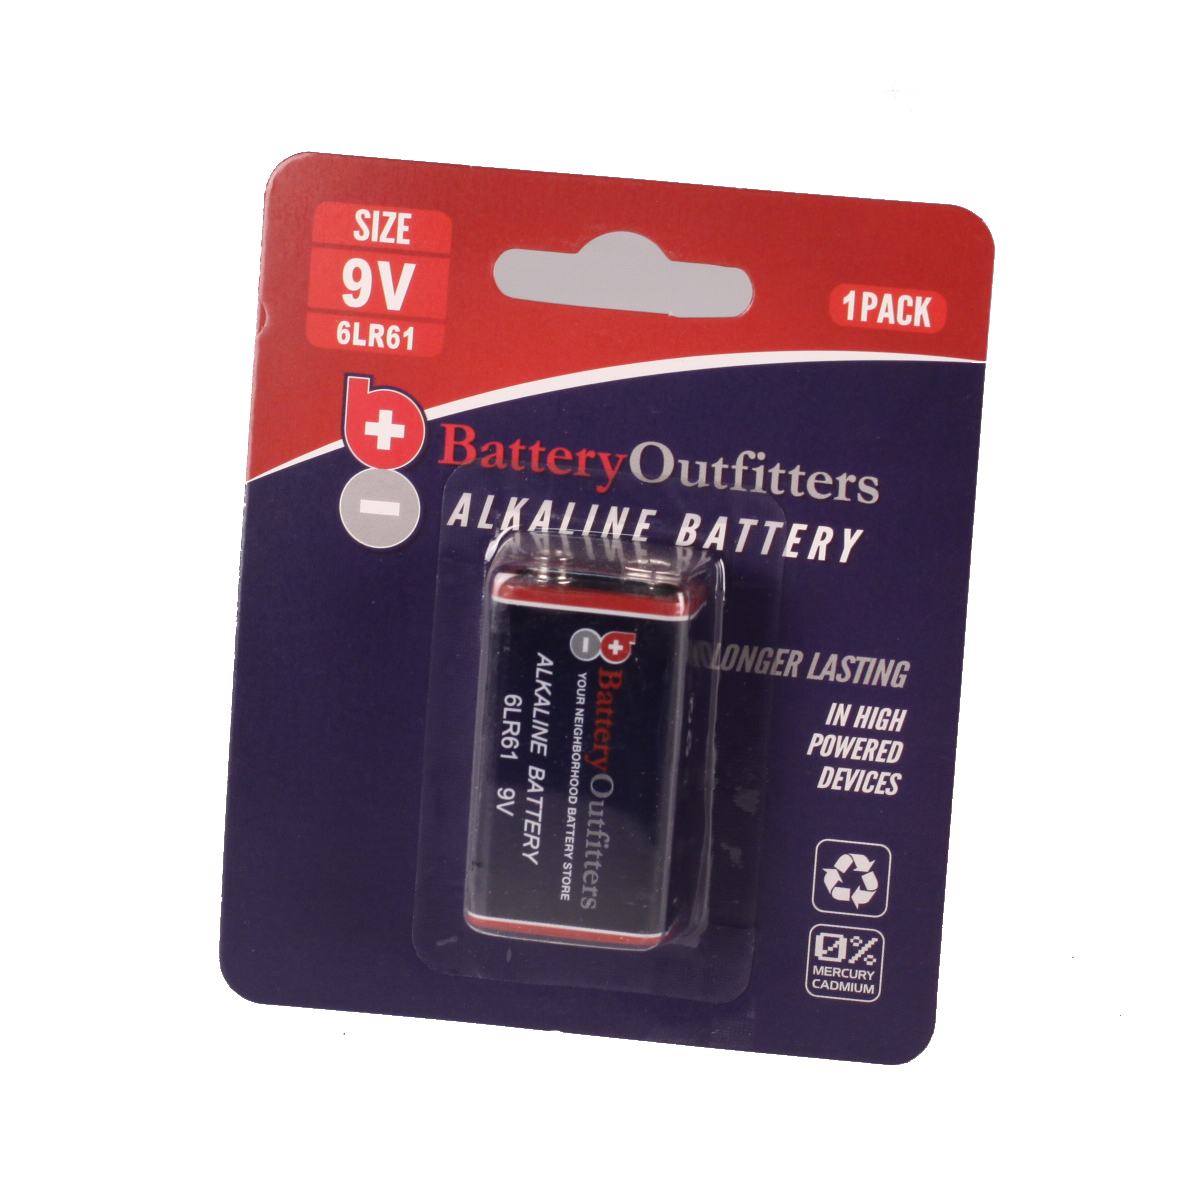 9V ALKALINE SINGLE PACK